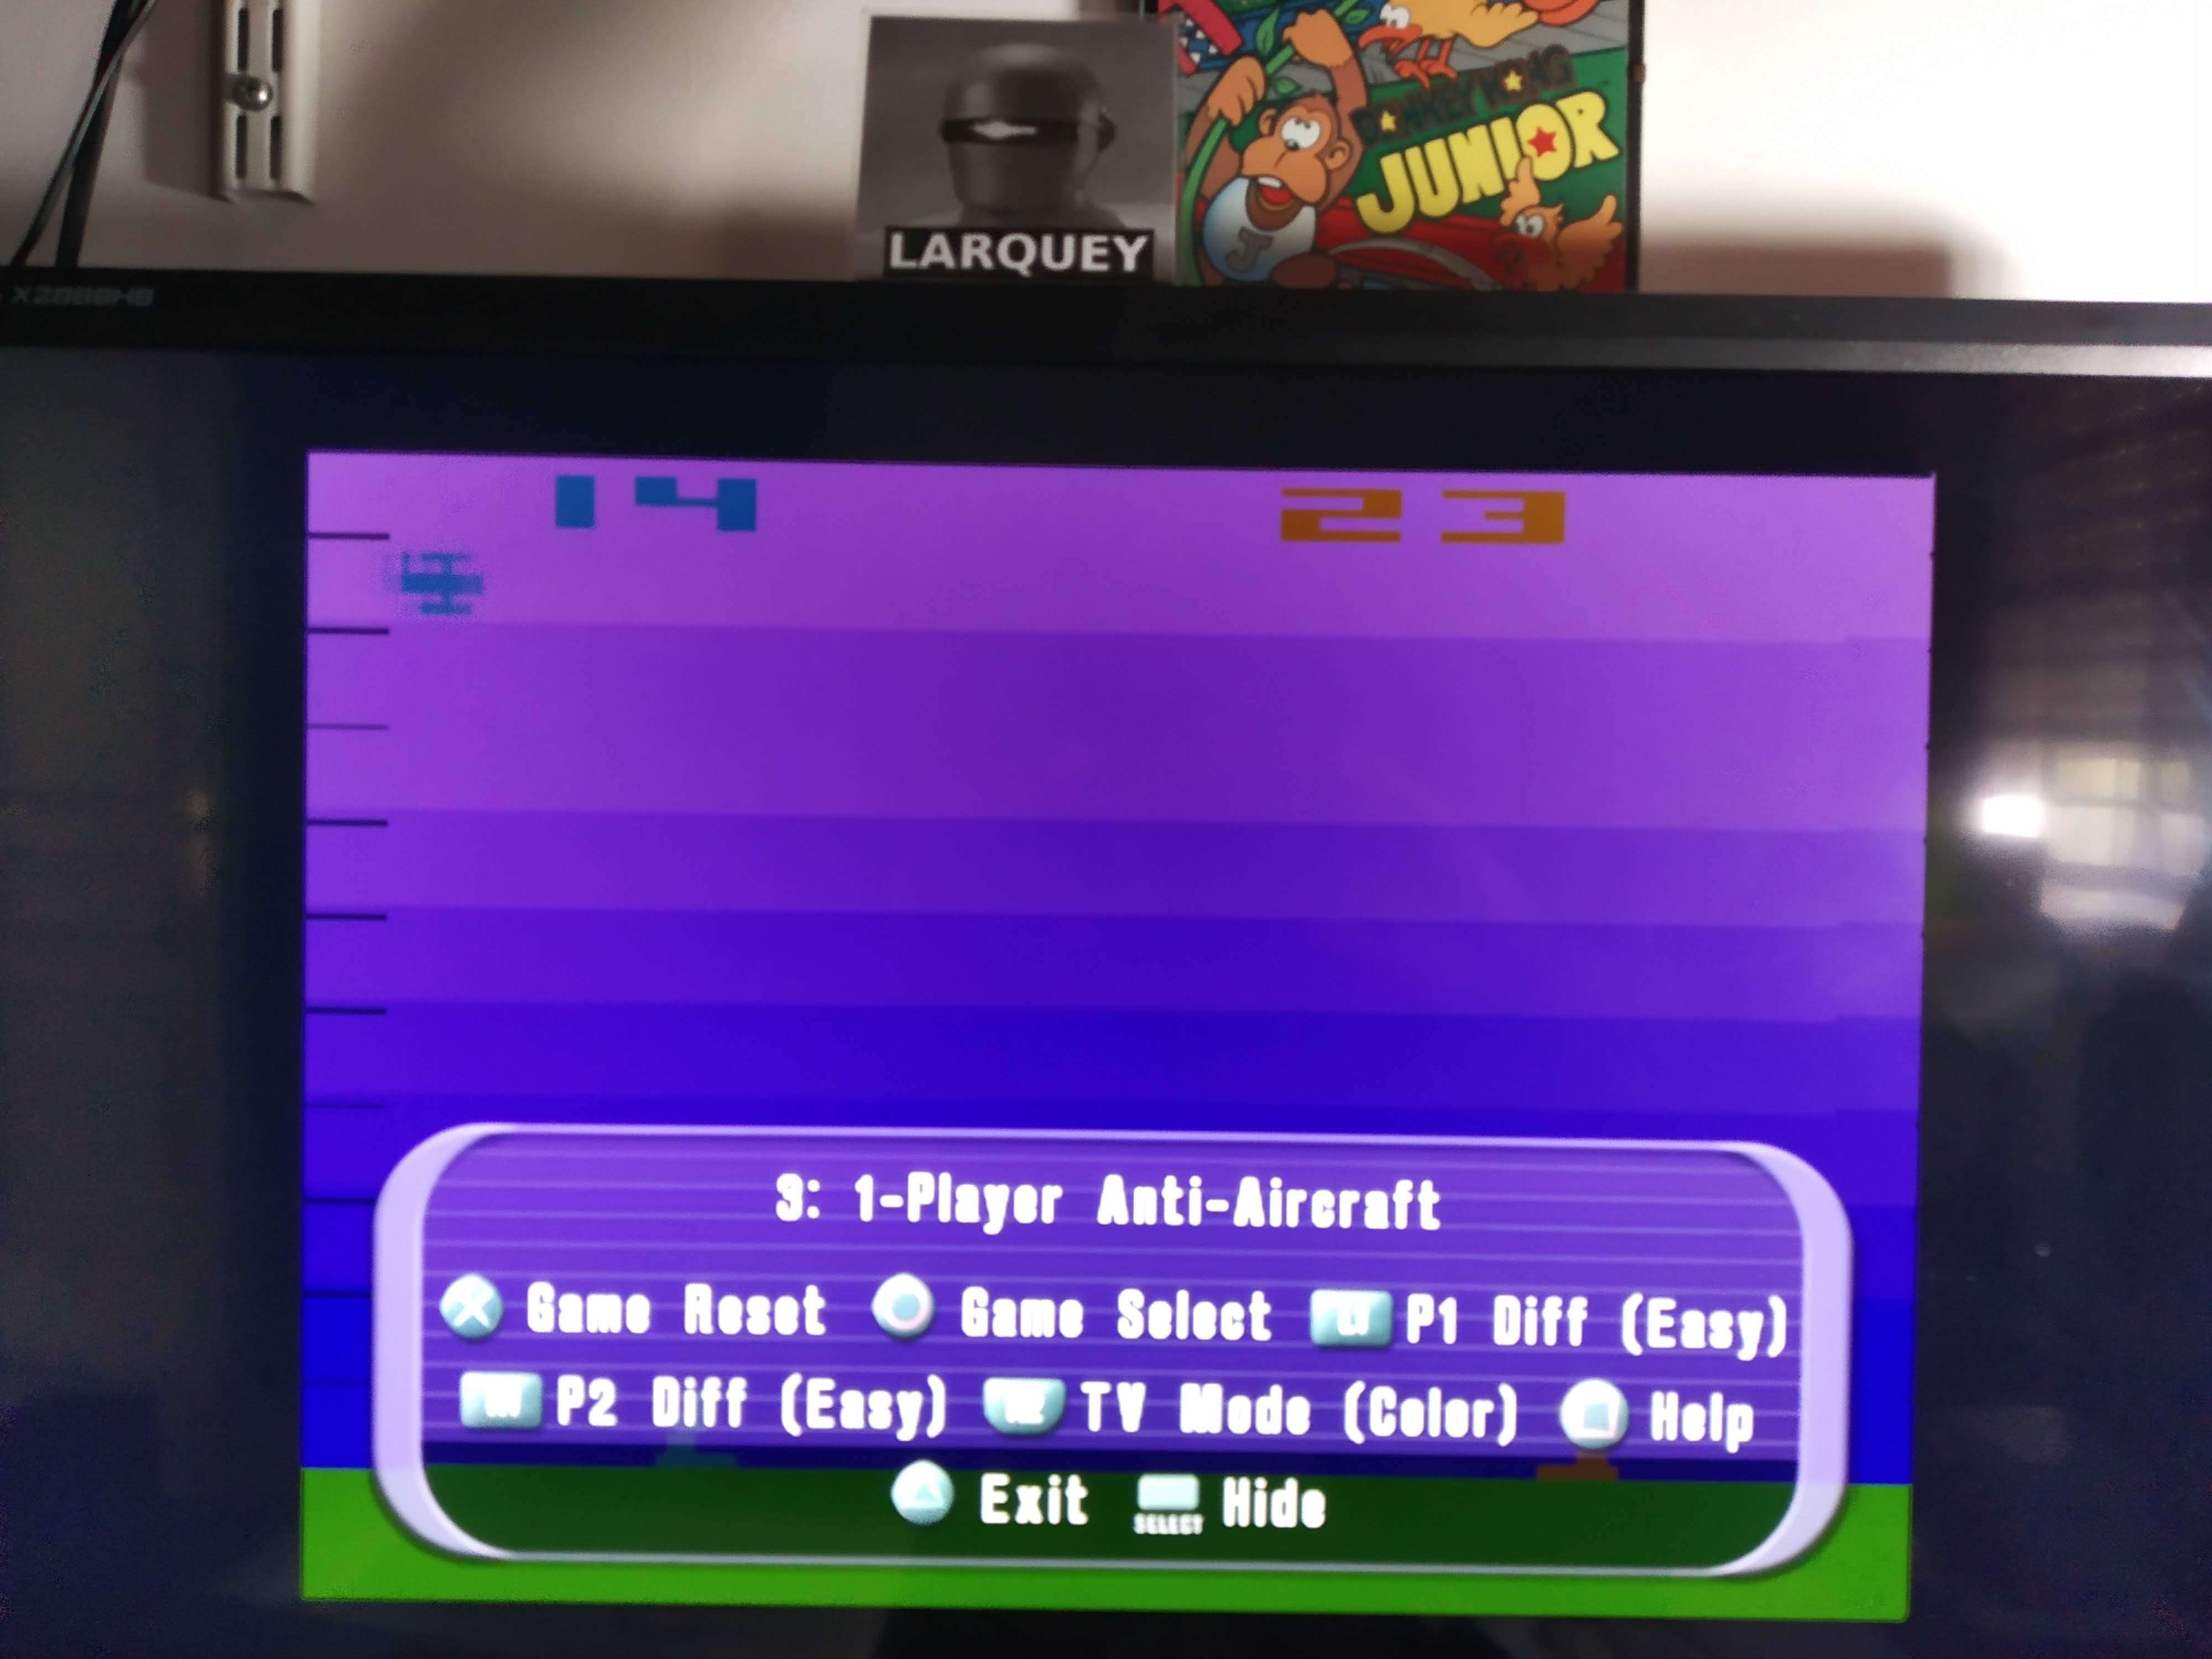 Larquey: Atari Anthology: Air-Sea Battle [Game 3B: Point Difference] (Playstation 2 Emulated) 9 points on 2020-08-05 12:12:56